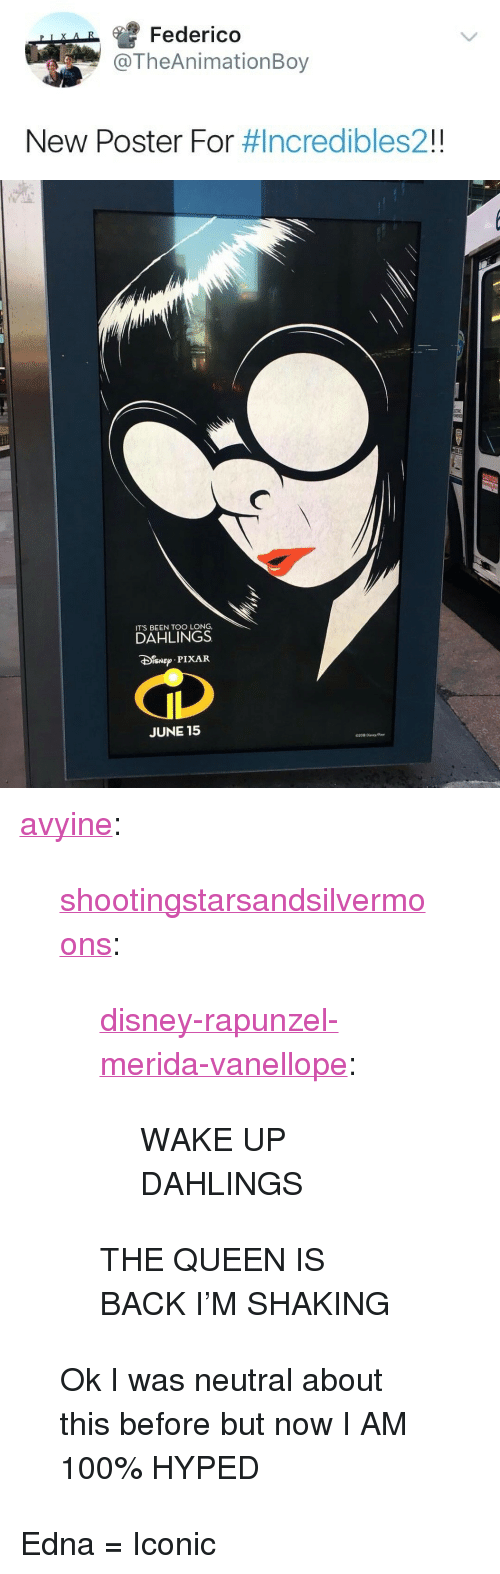 """Rapunzel: Federico  TheAnimationBoy  New Poster For #Incredibles21   ITS BEEN TOO LONG,  DAHLINGS  PIXAR  JUNE 15 <p><a href=""""https://avyine.tumblr.com/post/170718730818/shootingstarsandsilvermoons"""" class=""""tumblr_blog"""">avyine</a>:</p>  <blockquote><p><a href=""""http://shootingstarsandsilvermoons.tumblr.com/post/170674202421/disney-rapunzel-merida-vanellope-wake-up"""" class=""""tumblr_blog"""">shootingstarsandsilvermoons</a>:</p> <blockquote> <p><a href=""""http://disney-rapunzel-merida-vanellope.tumblr.com/post/170668959964/wake-up-dahlings"""" class=""""tumblr_blog"""">disney-rapunzel-merida-vanellope</a>:</p> <blockquote><p>WAKE UP DAHLINGS</p></blockquote> <p>THE QUEEN IS BACK I'M SHAKING</p> </blockquote>  <p>Ok I was neutral about this before but now I AM 100% HYPED</p></blockquote>  <p>Edna = Iconic</p>"""